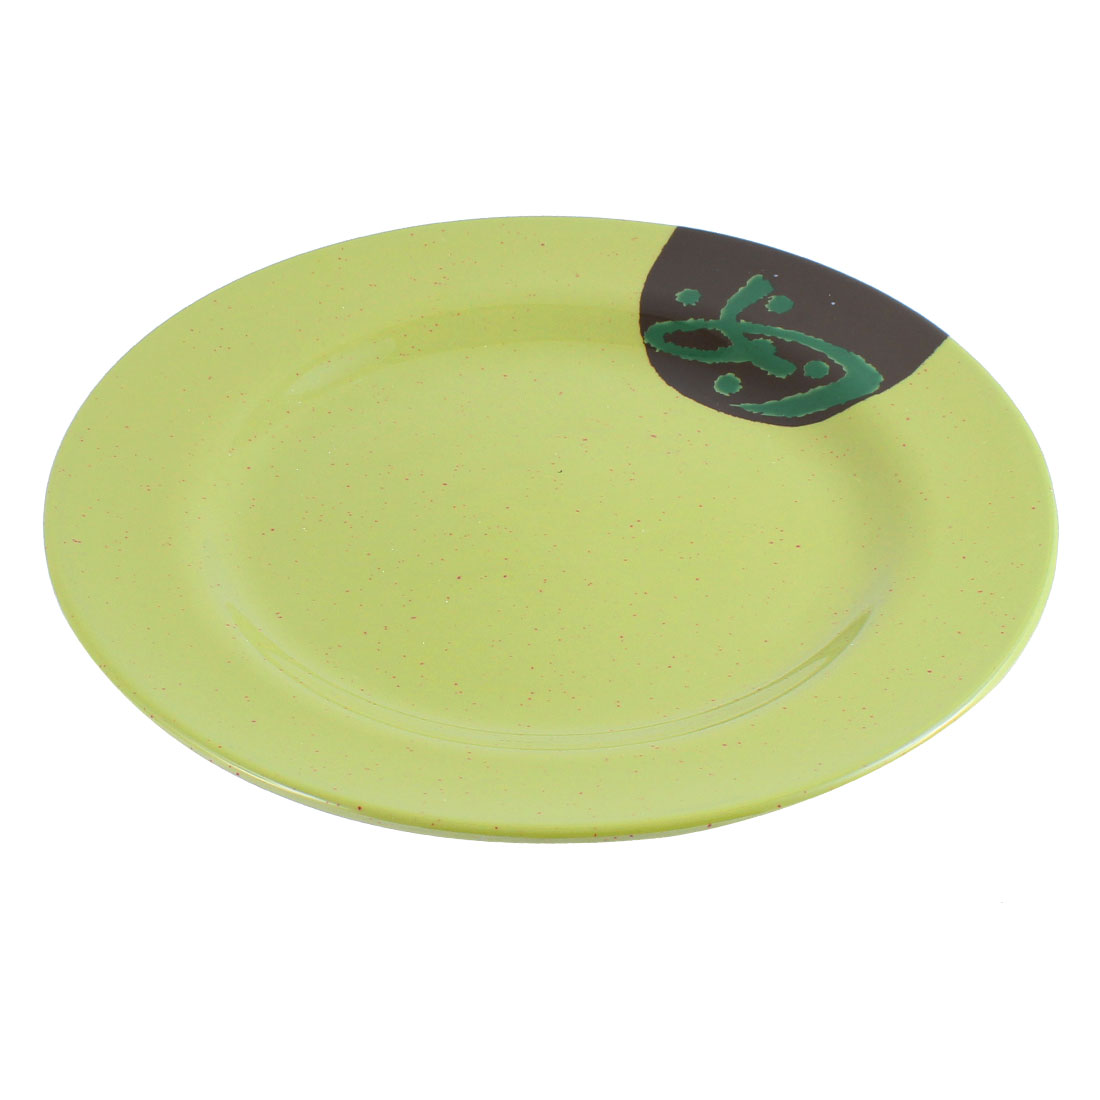 "Restaurant Plastic Round Shaped Western Food Dish Plate 10"" Dia"